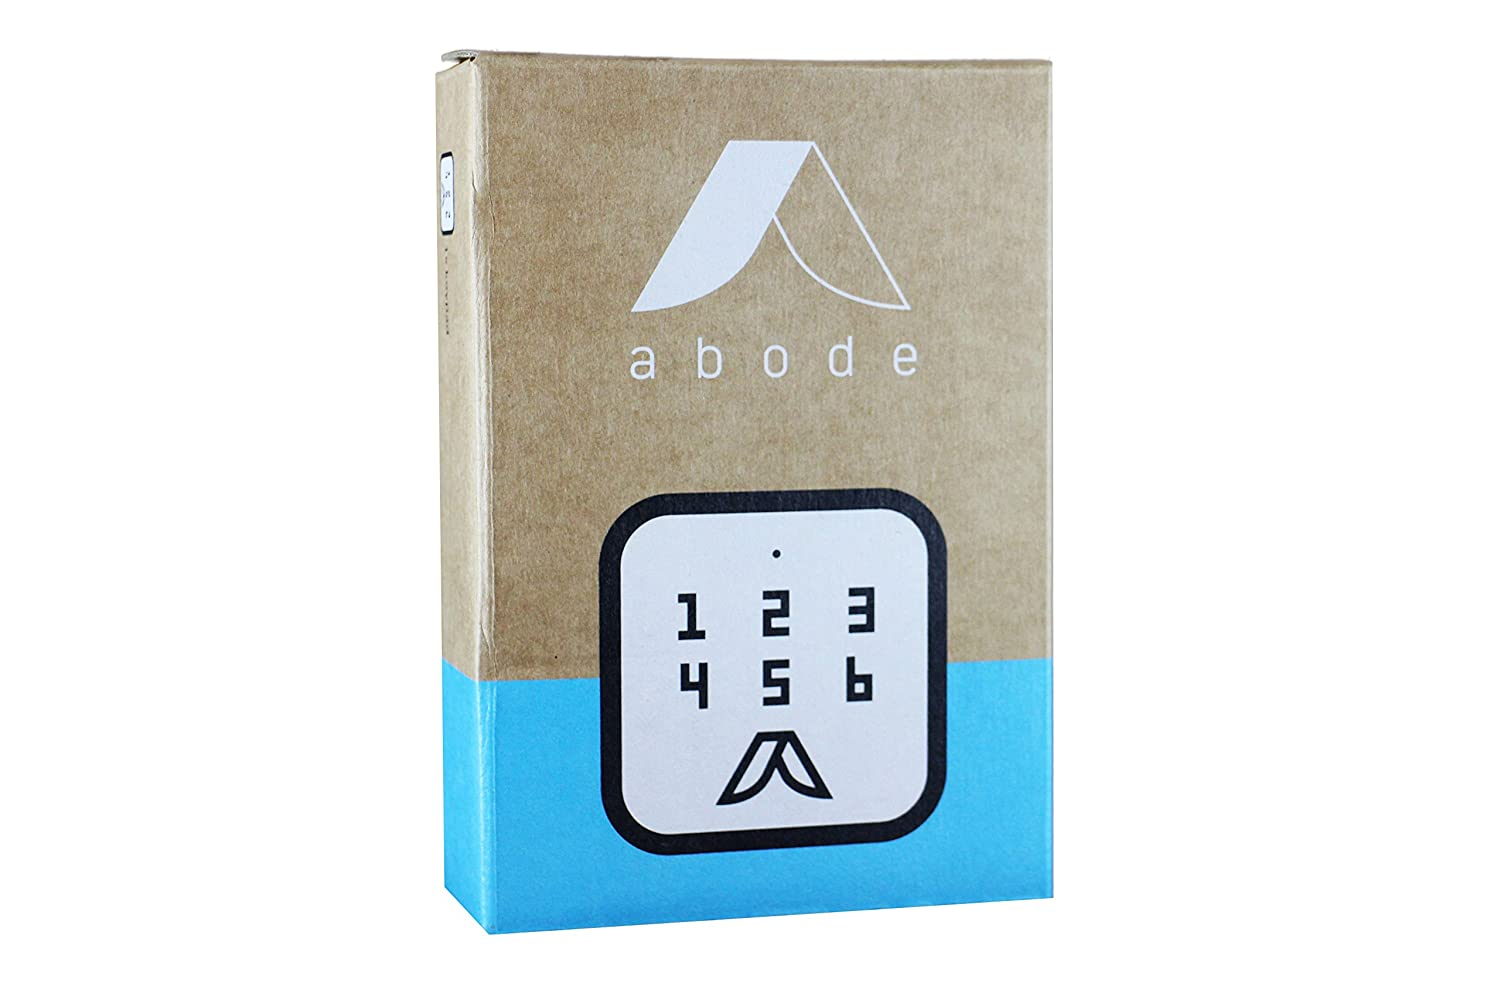 Arm /& Disarm Your System Easy Tool-Free Install abode Wireless Keypad